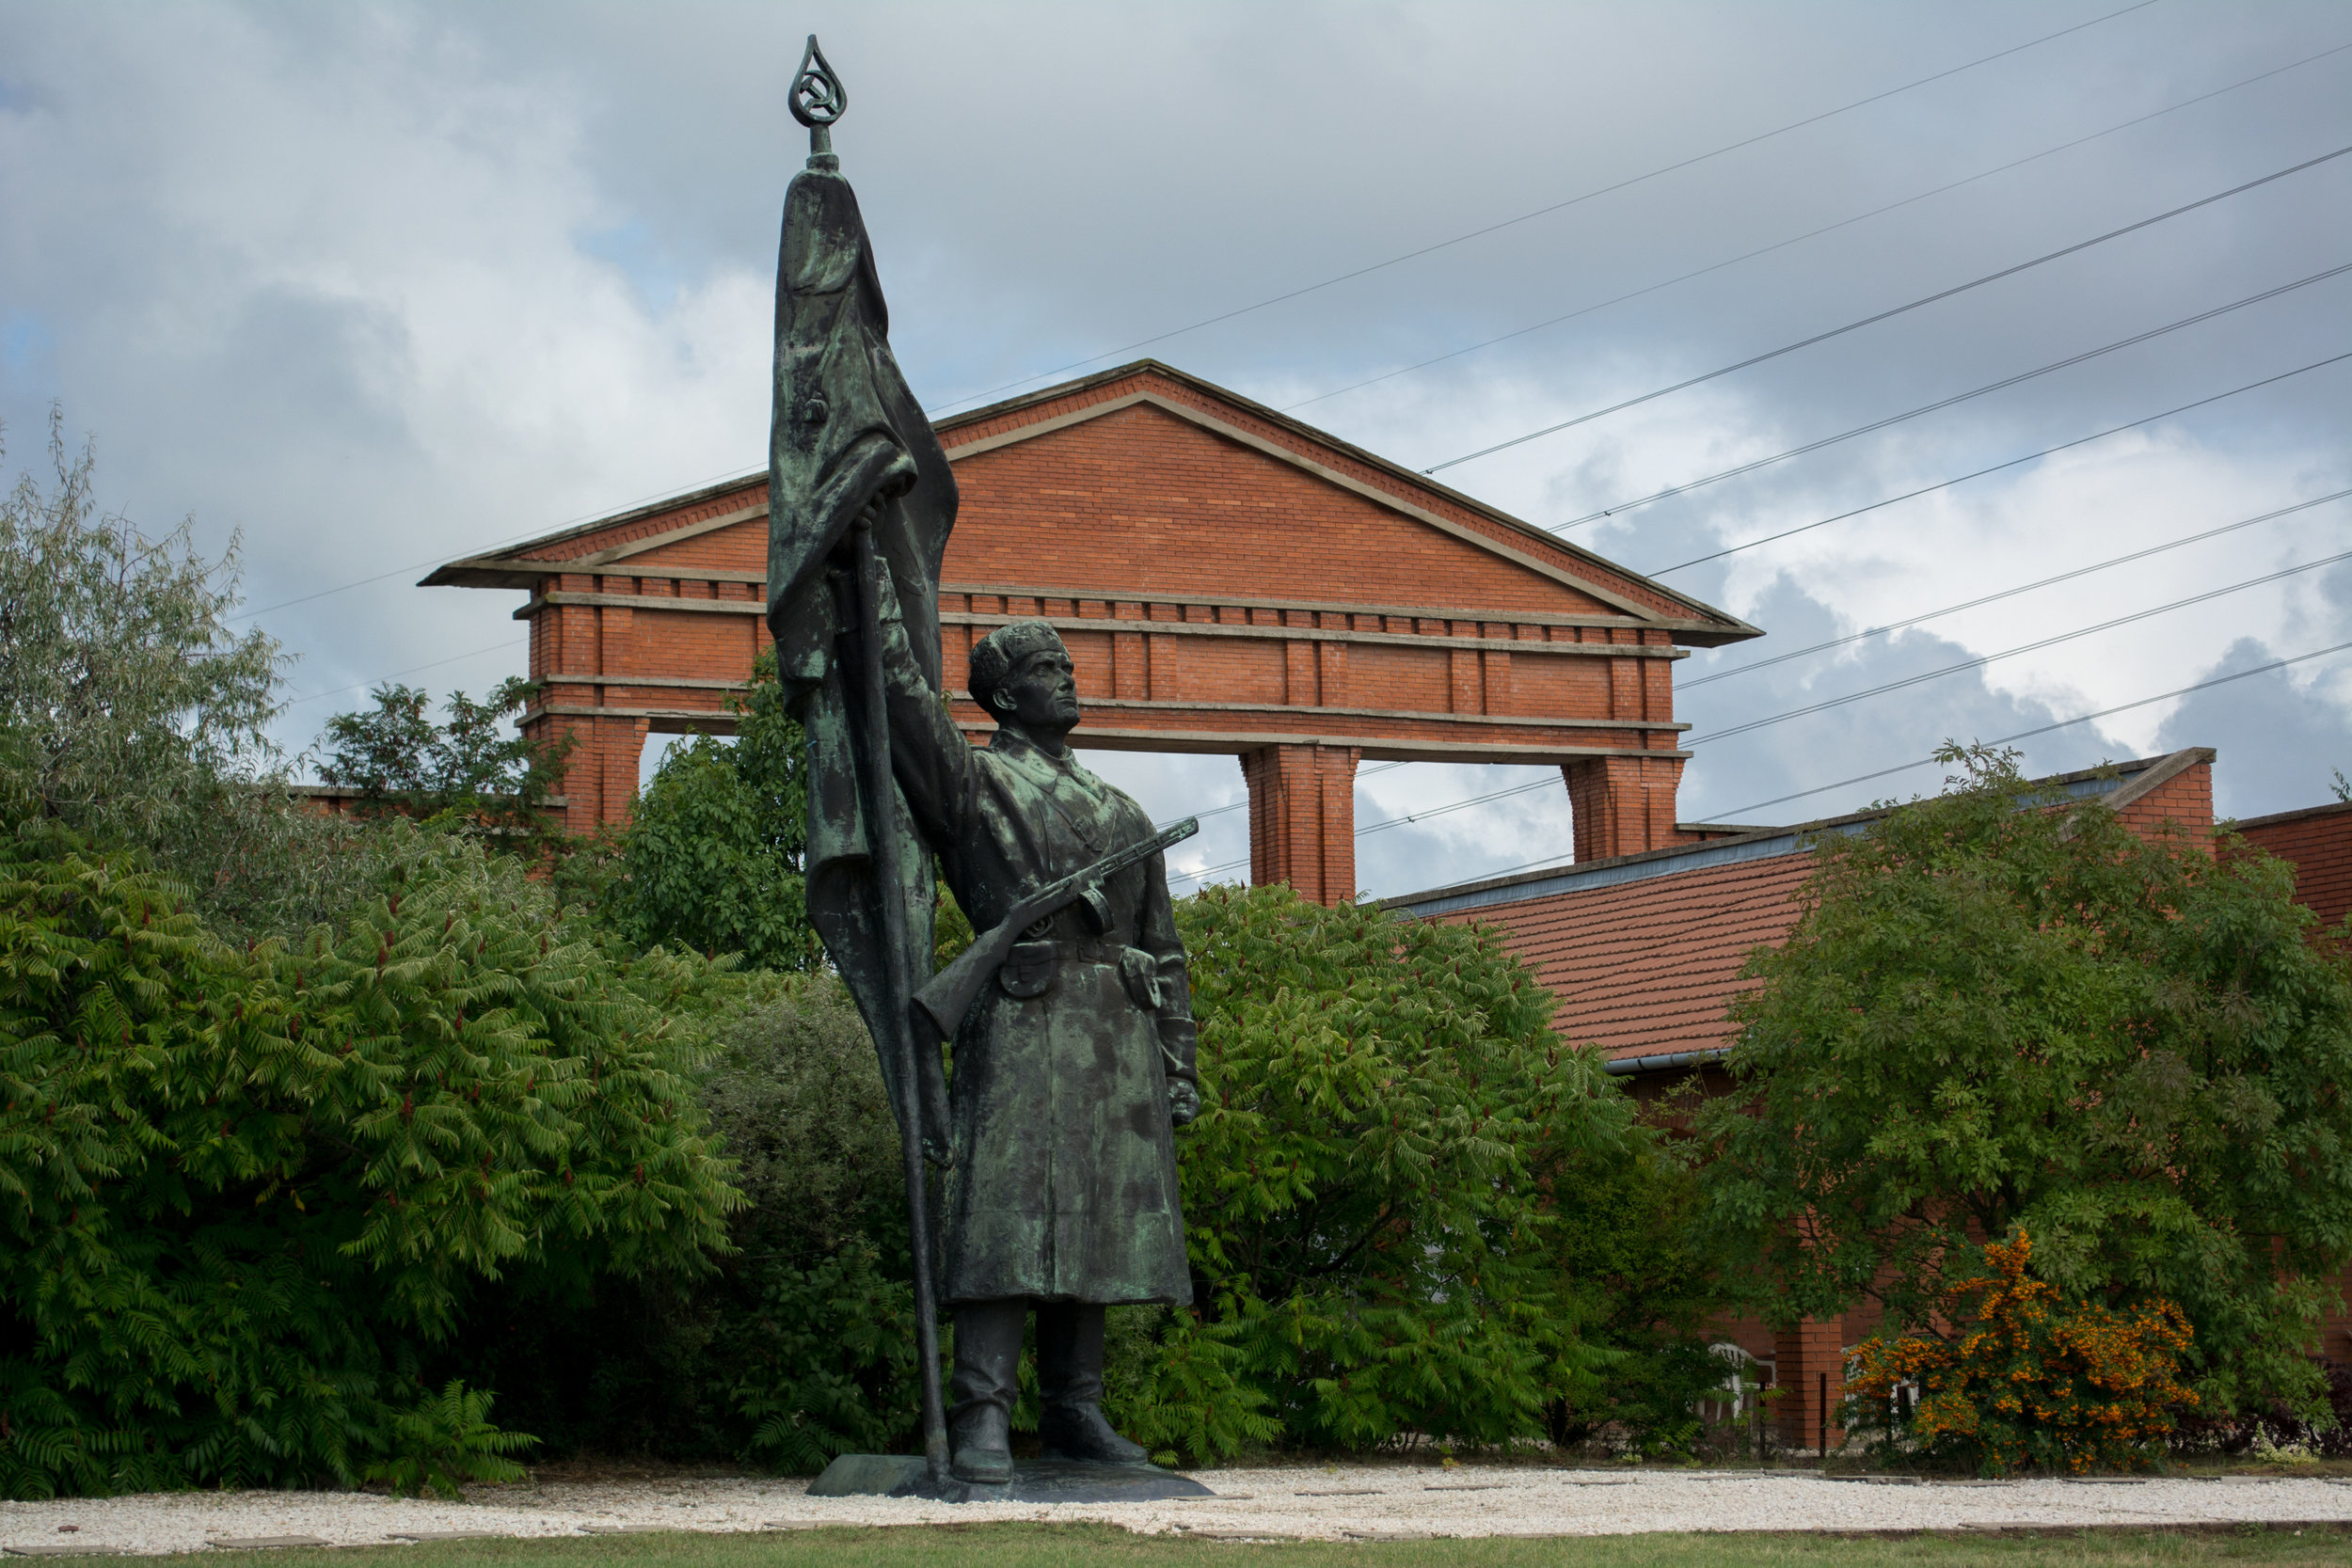 The Liberation Monument, which celebrated the Soviet victory over Hungary